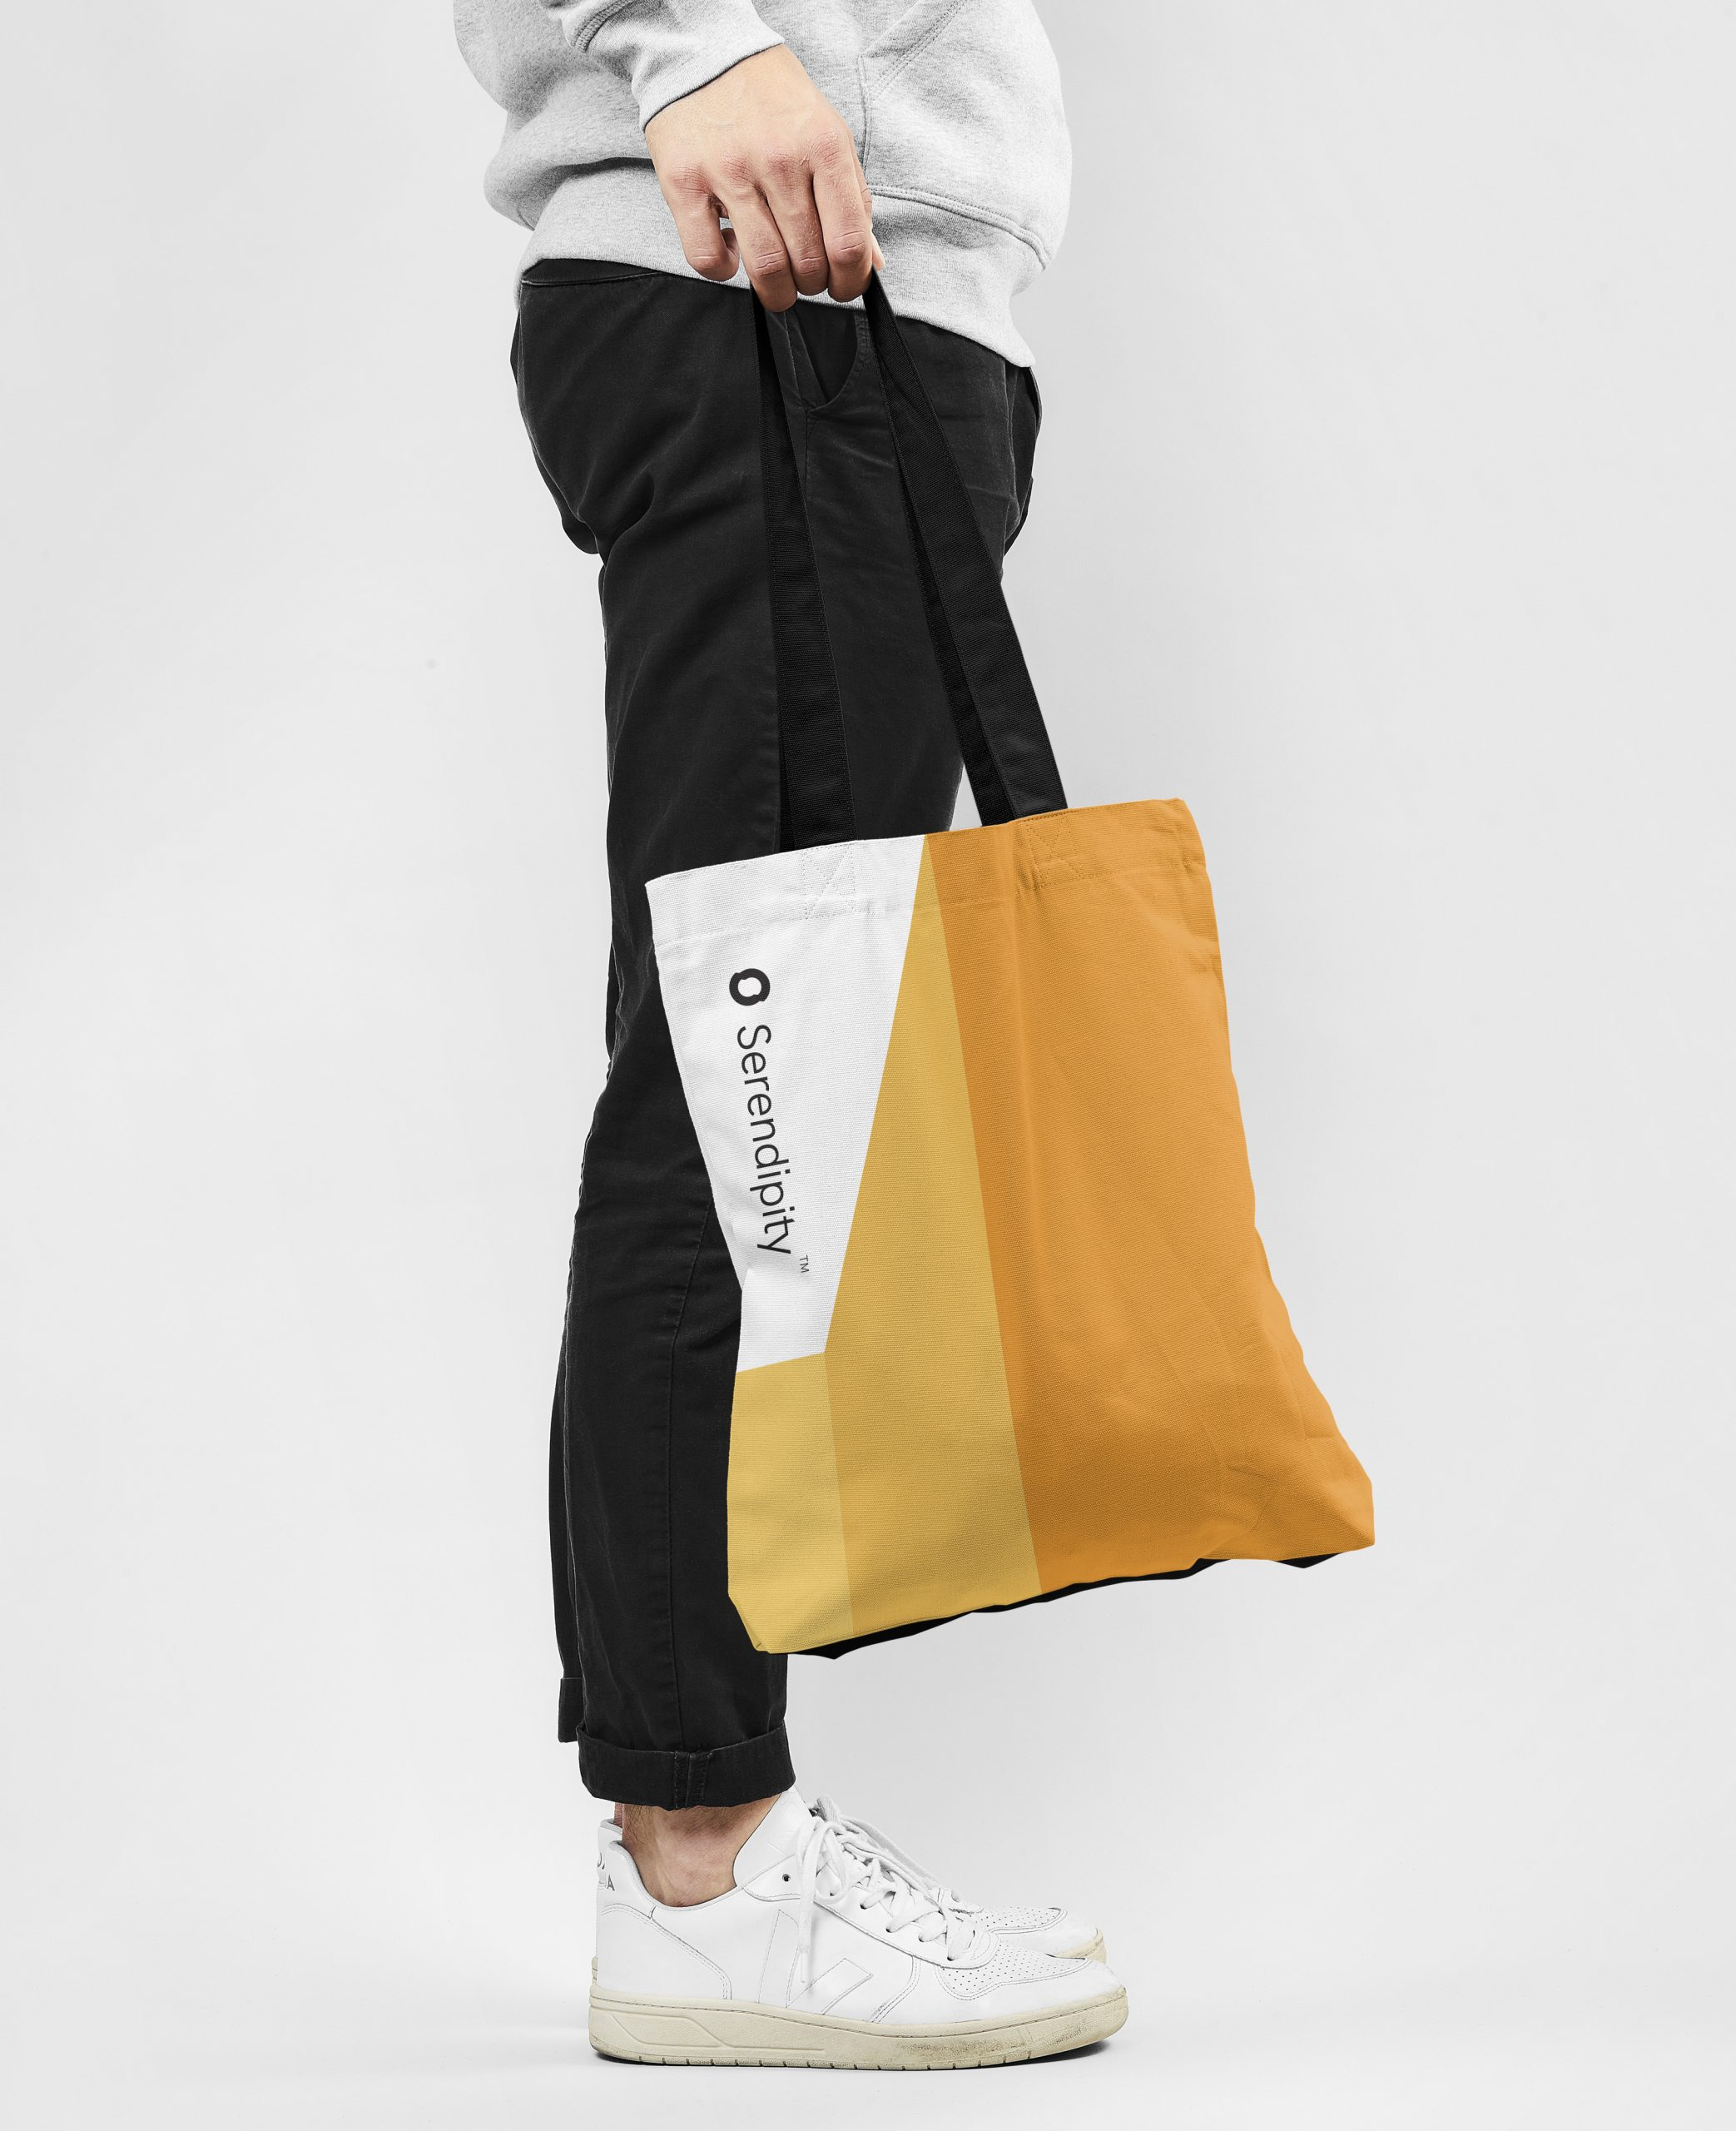 serendipity_tote_2021_04_16_02